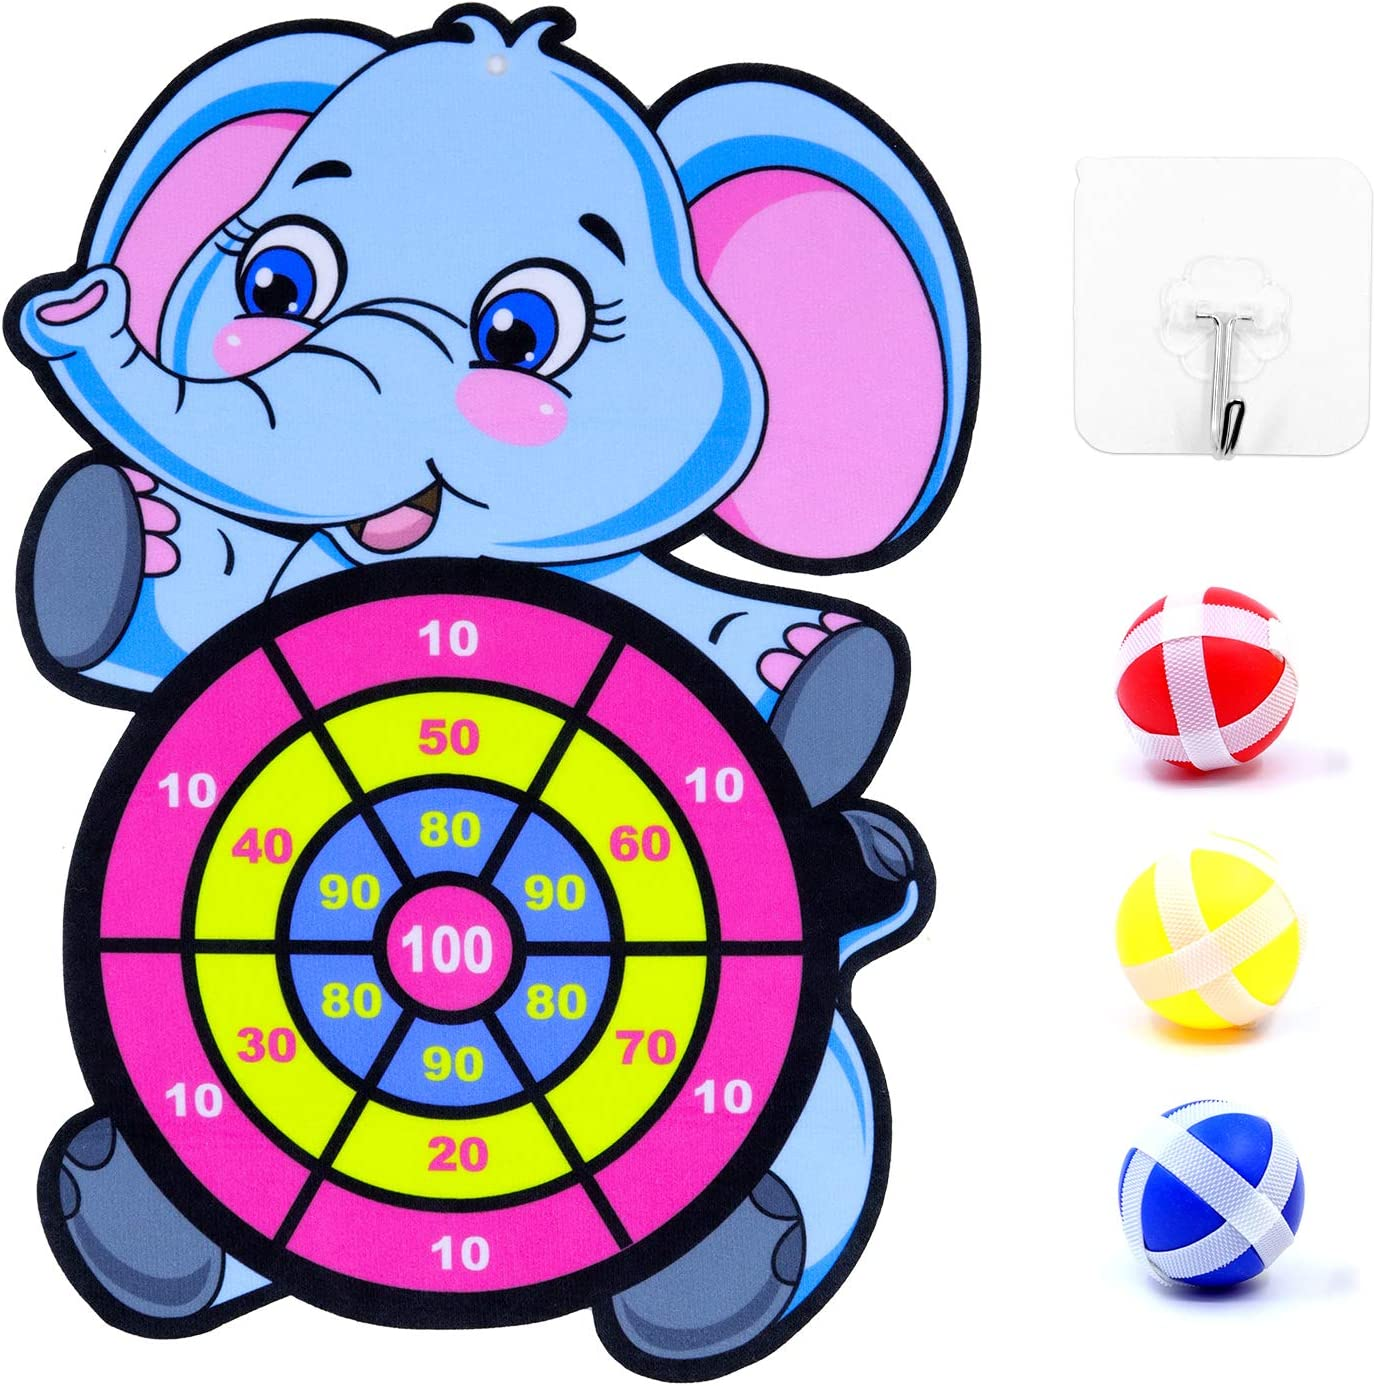 Lohoee Childrens Dart Board Toys Magic Sticky Ball Kids Early Development Skills Games Toys for Age 3-6 Year Old Boys and Girl Birthday Gifts Indoor or Outdoor Play